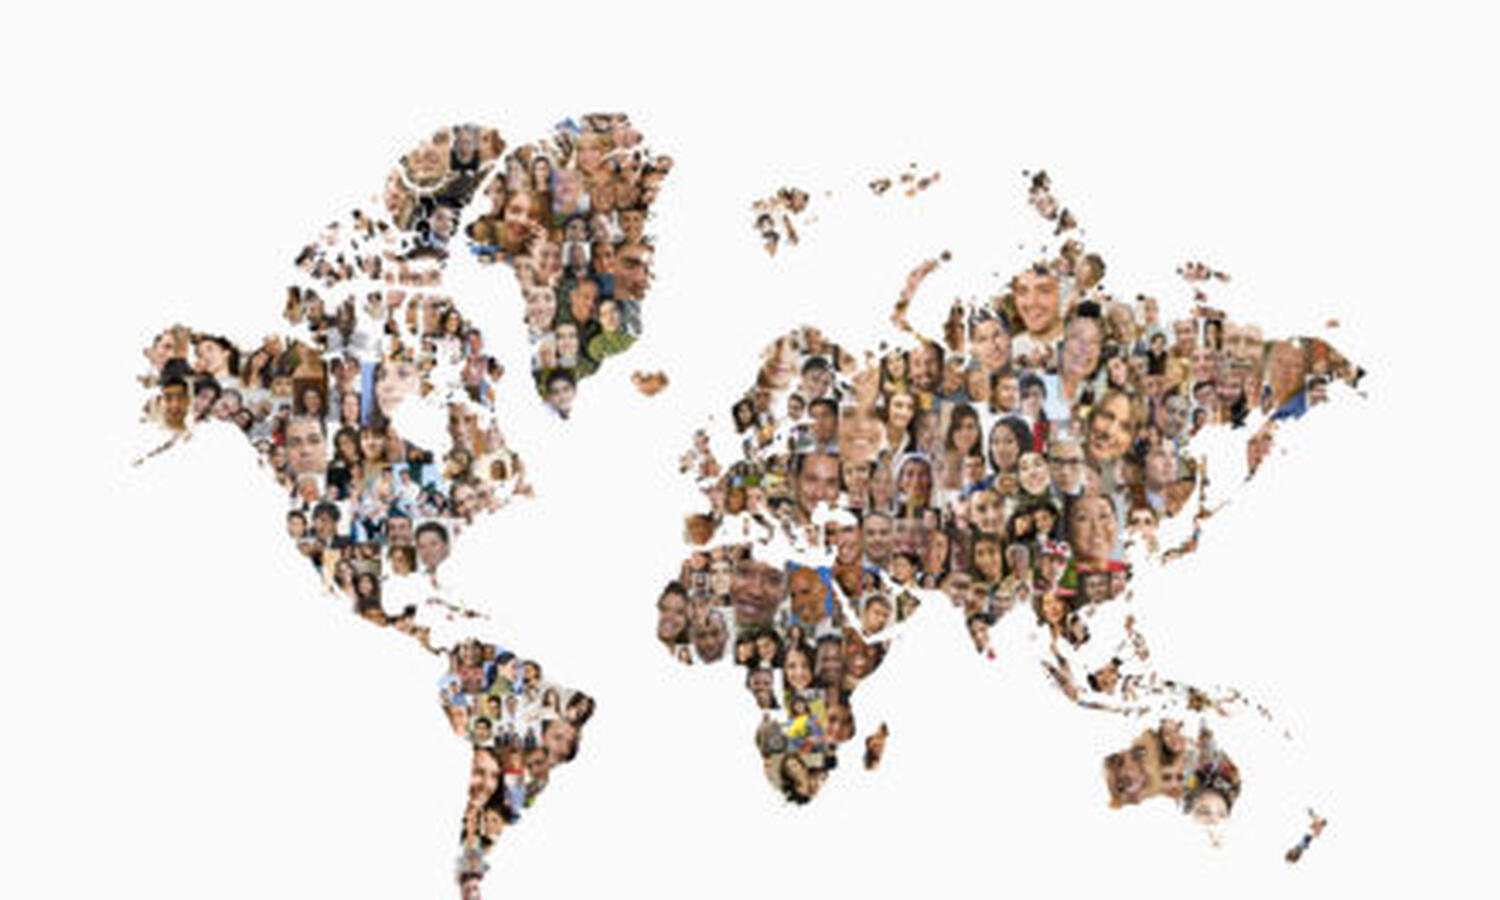 Image of World map created from people of different races and ethnicities